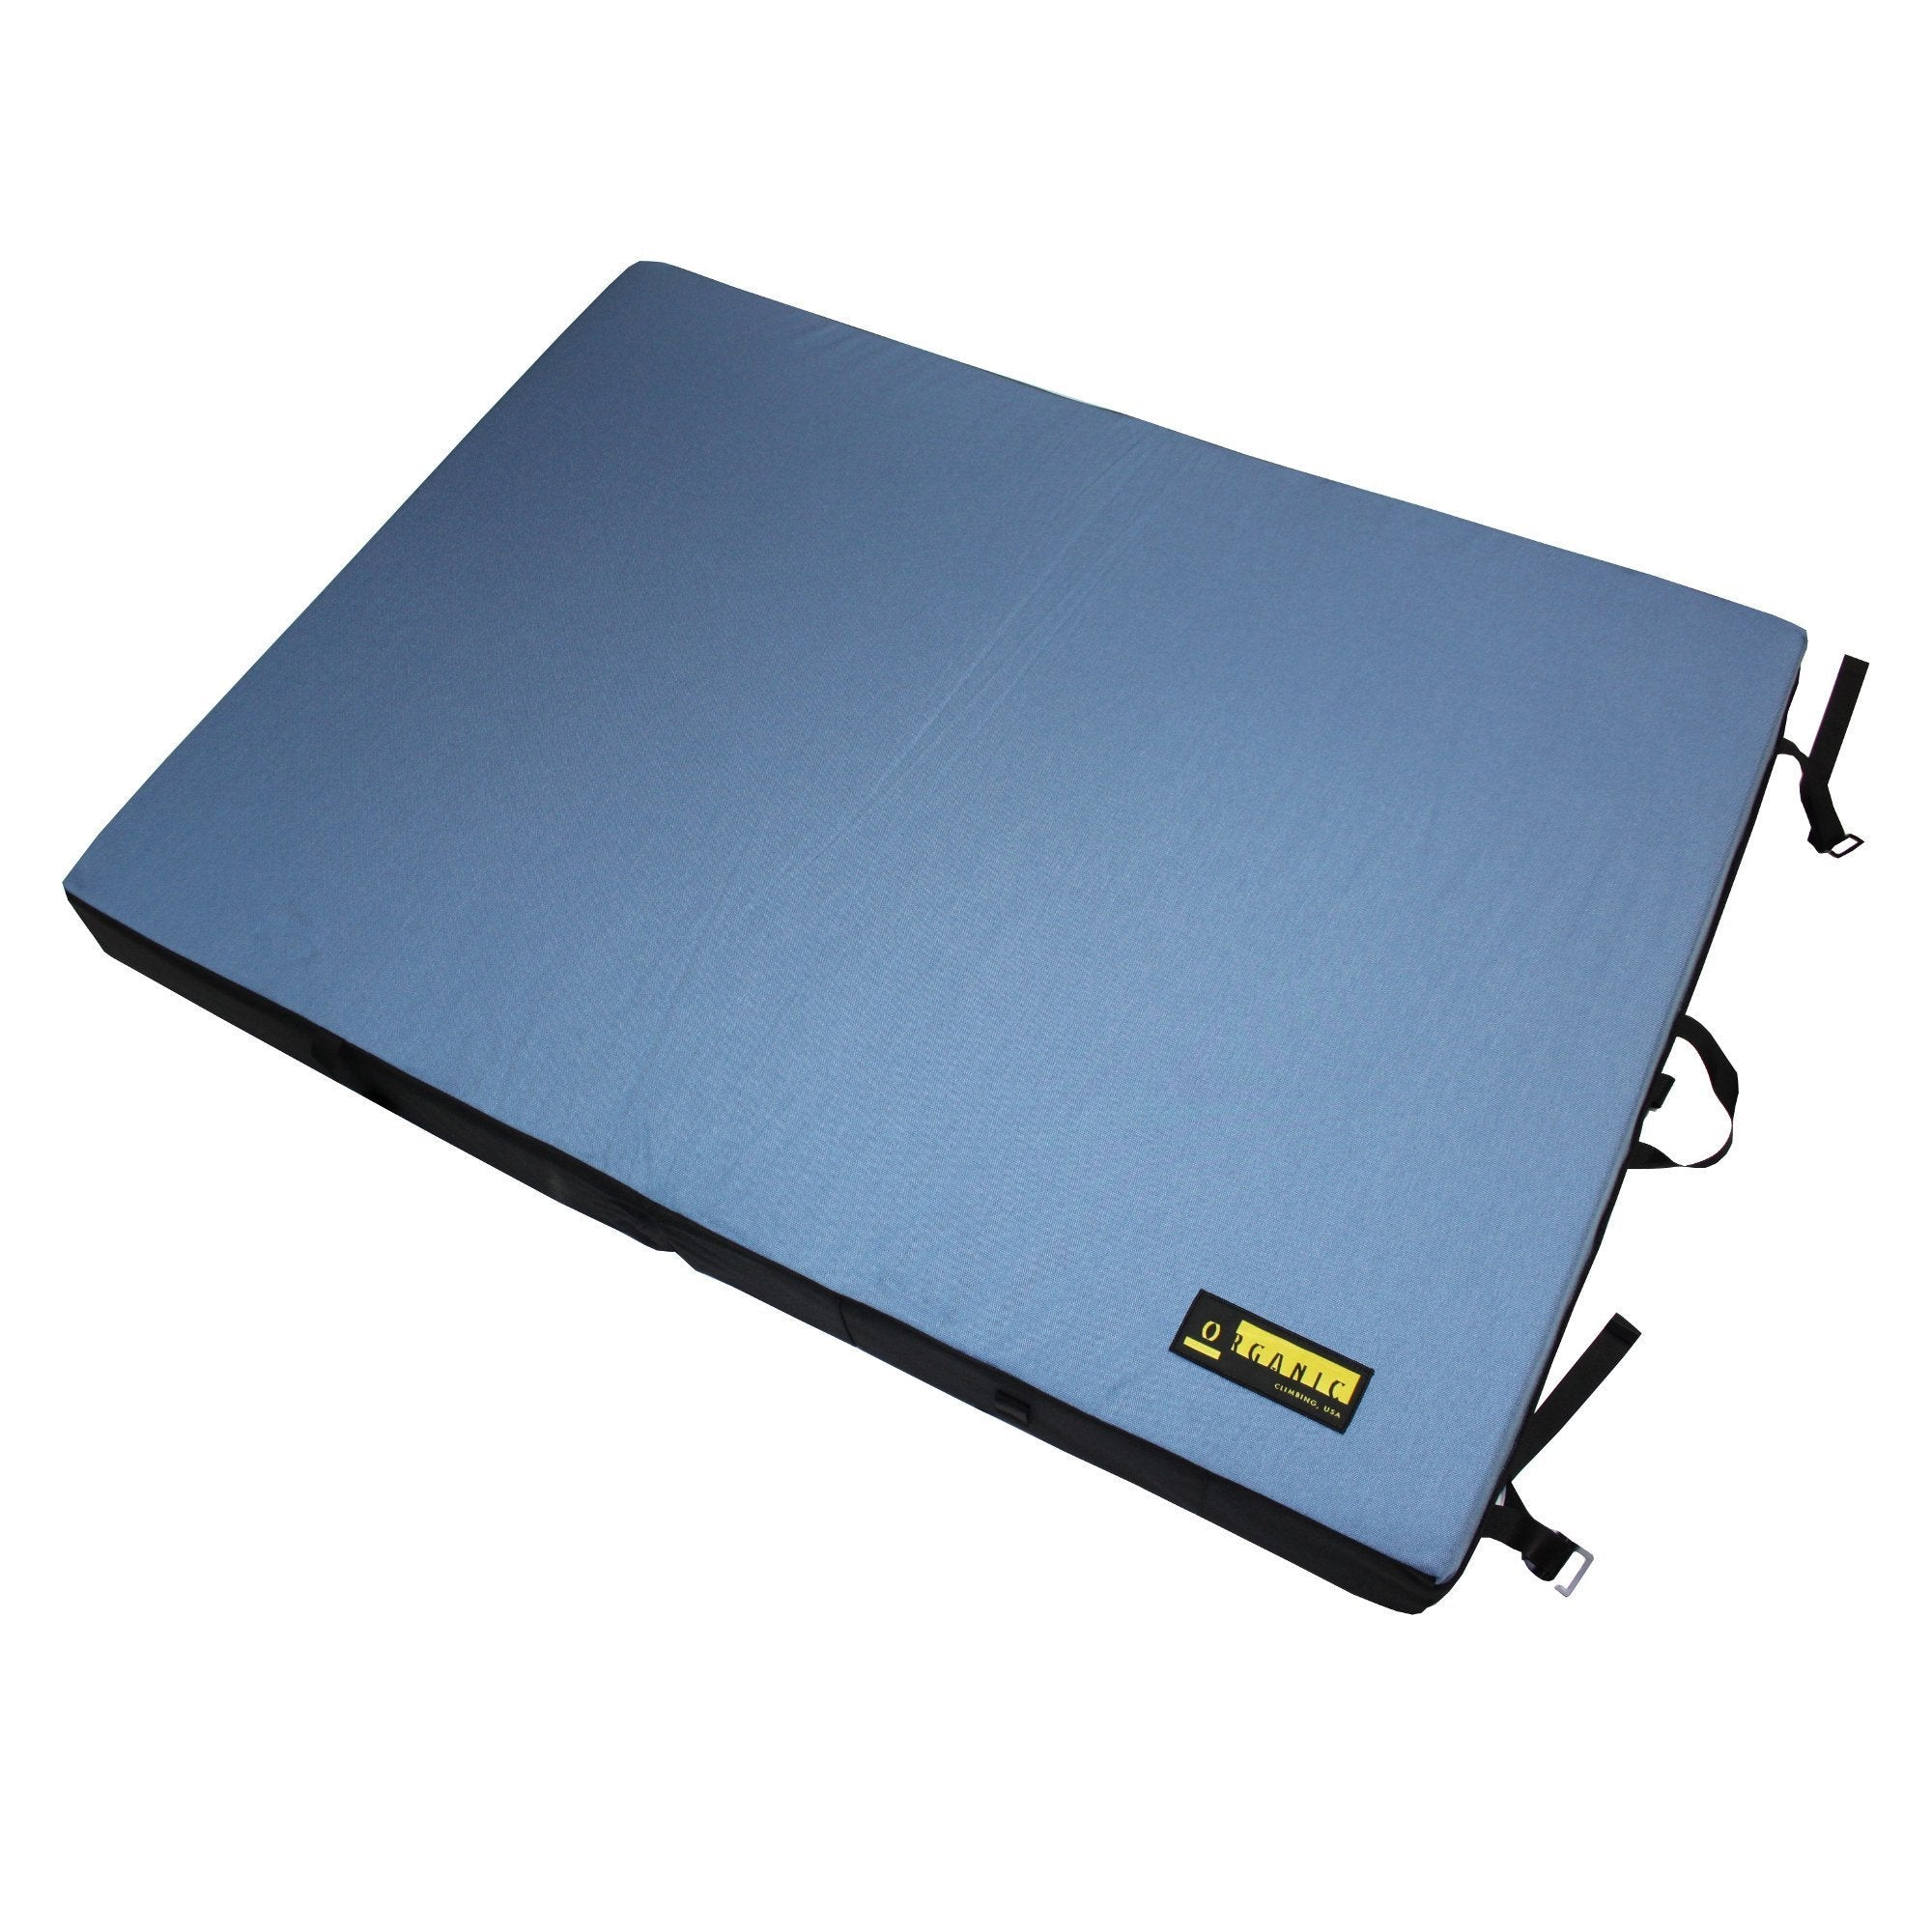 Organic Simple Pad, shown open laid flat in blue colour